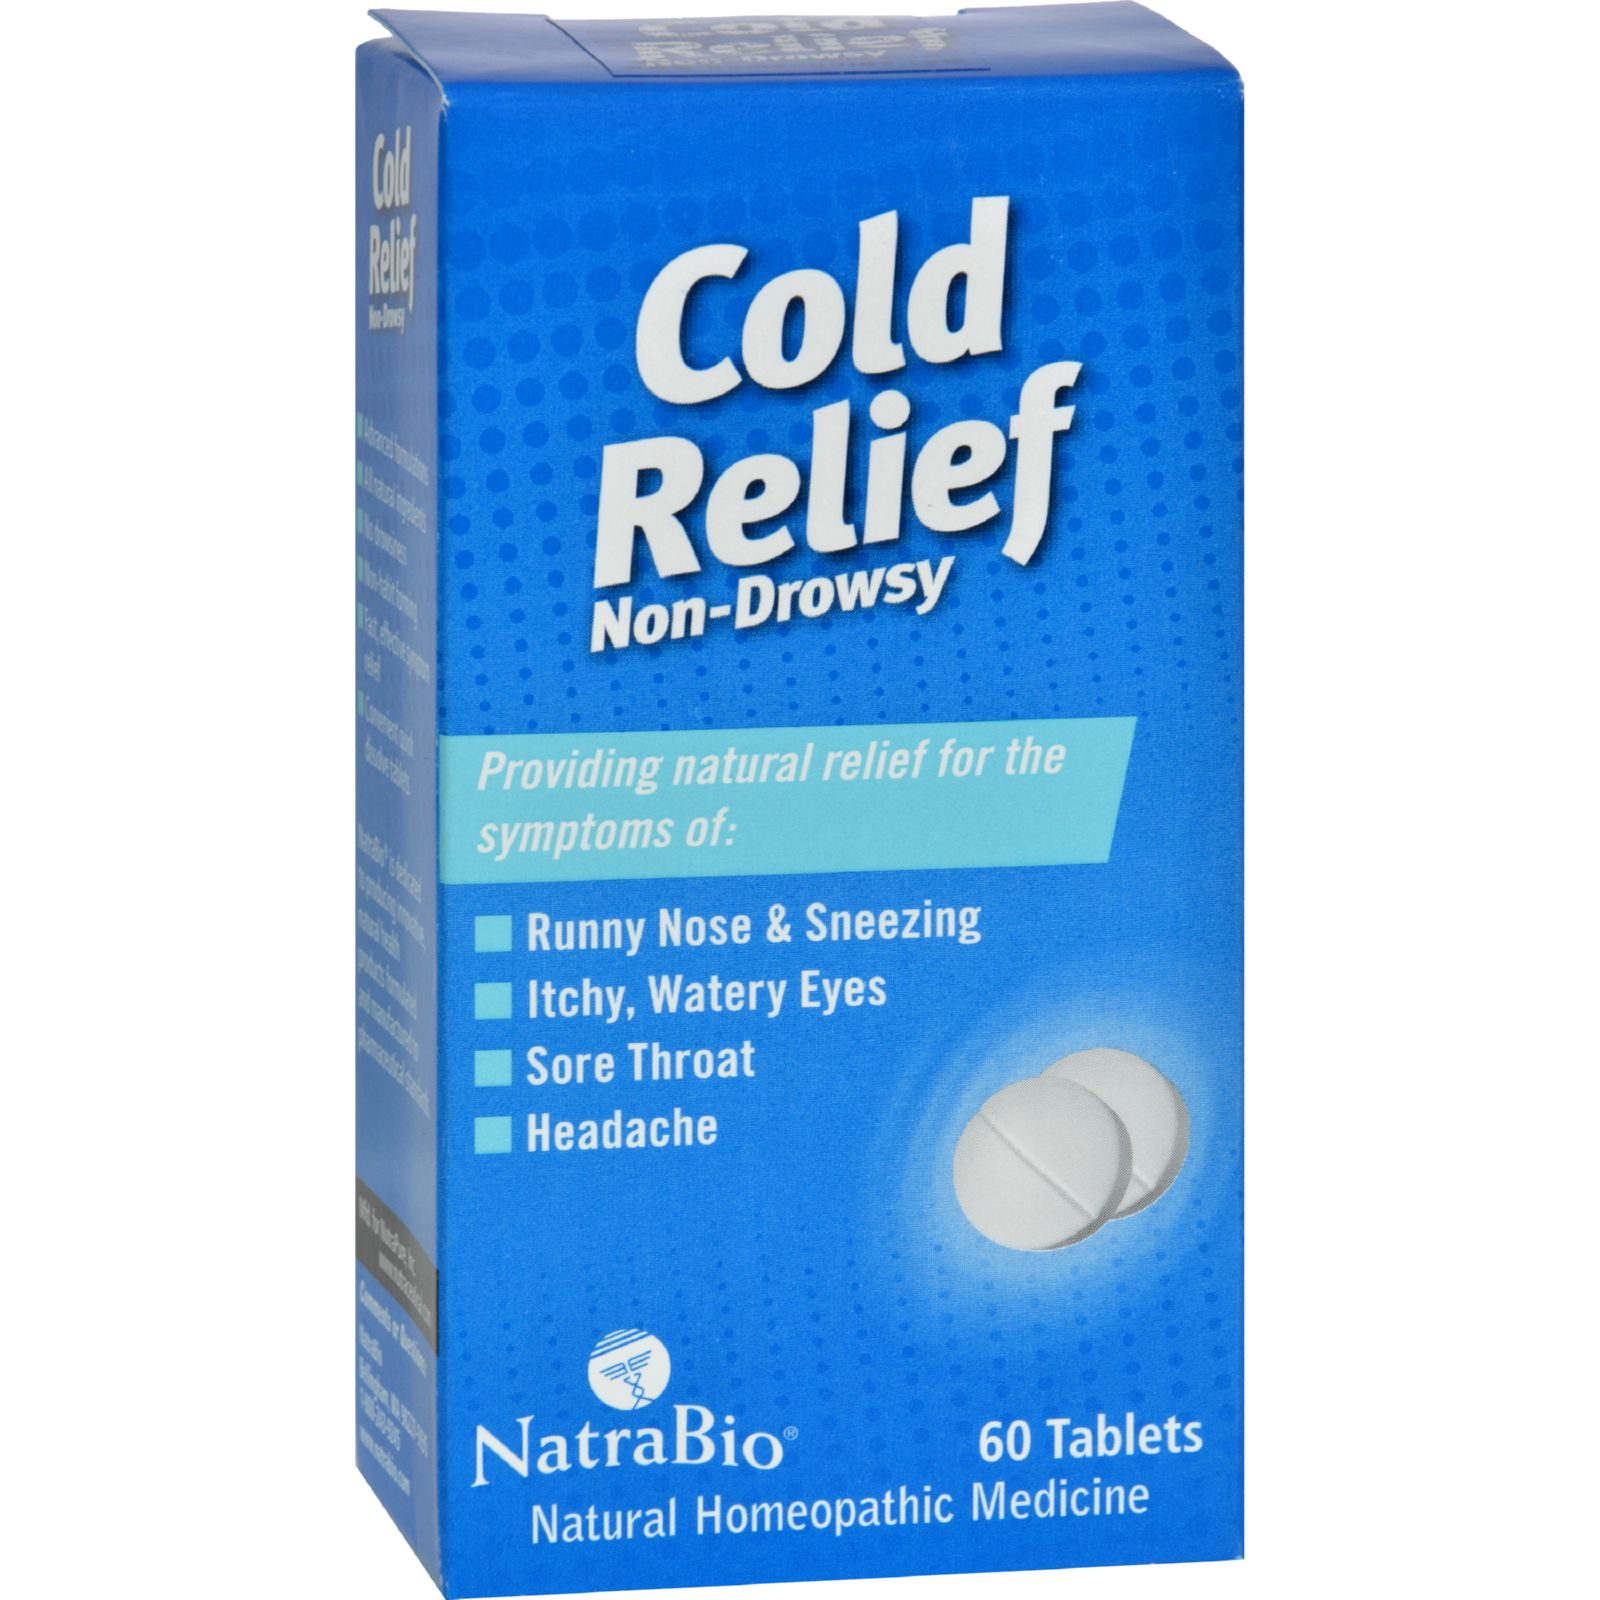 Natrabio Cold Relief Non-drowsy - 60 Tablets